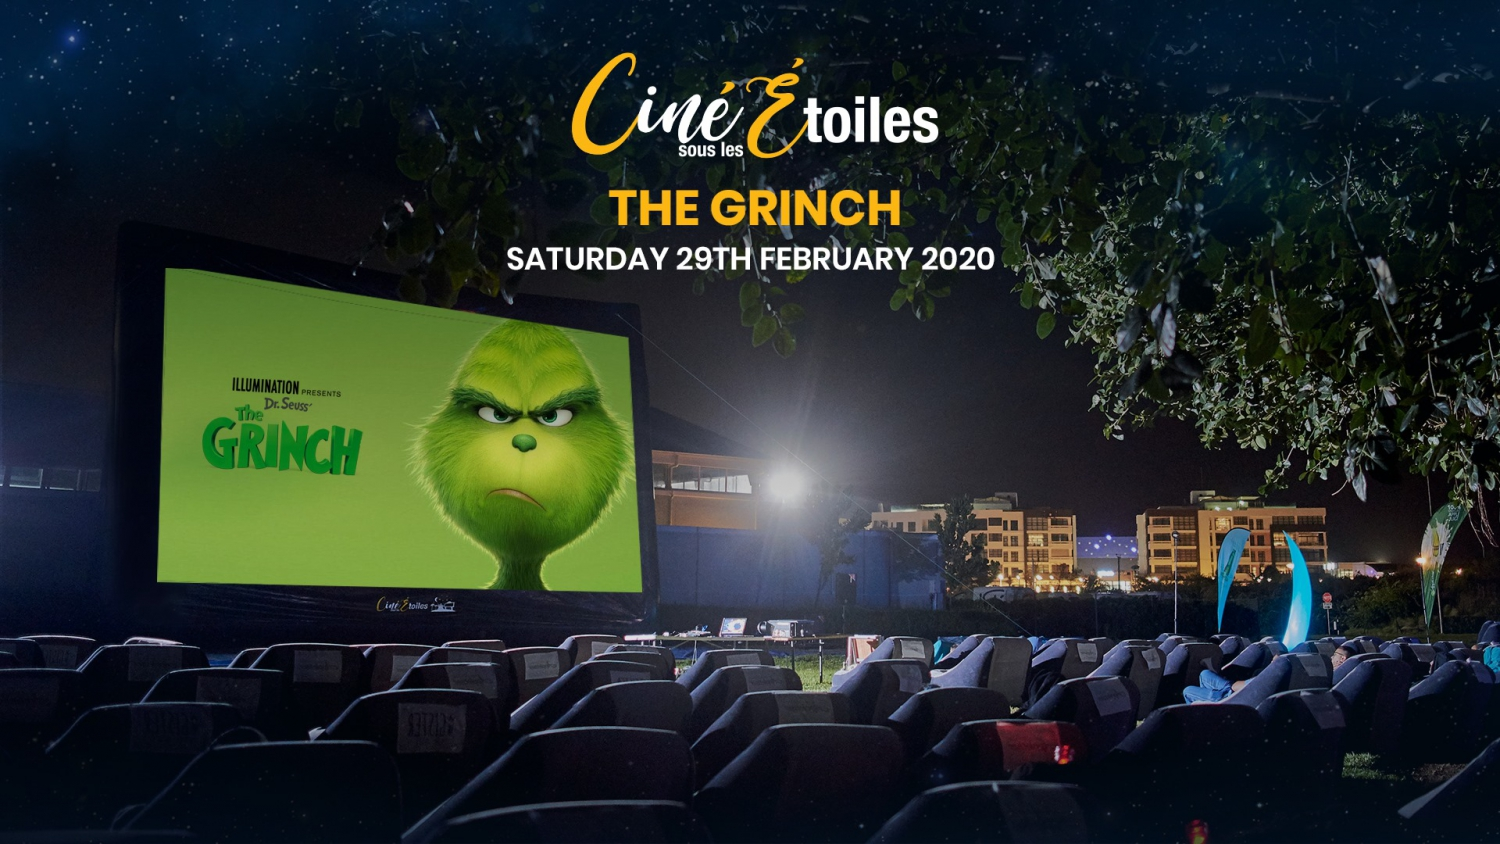 The Grinch - Ciné Sous Les Étoiles (Outdoor Cinema)